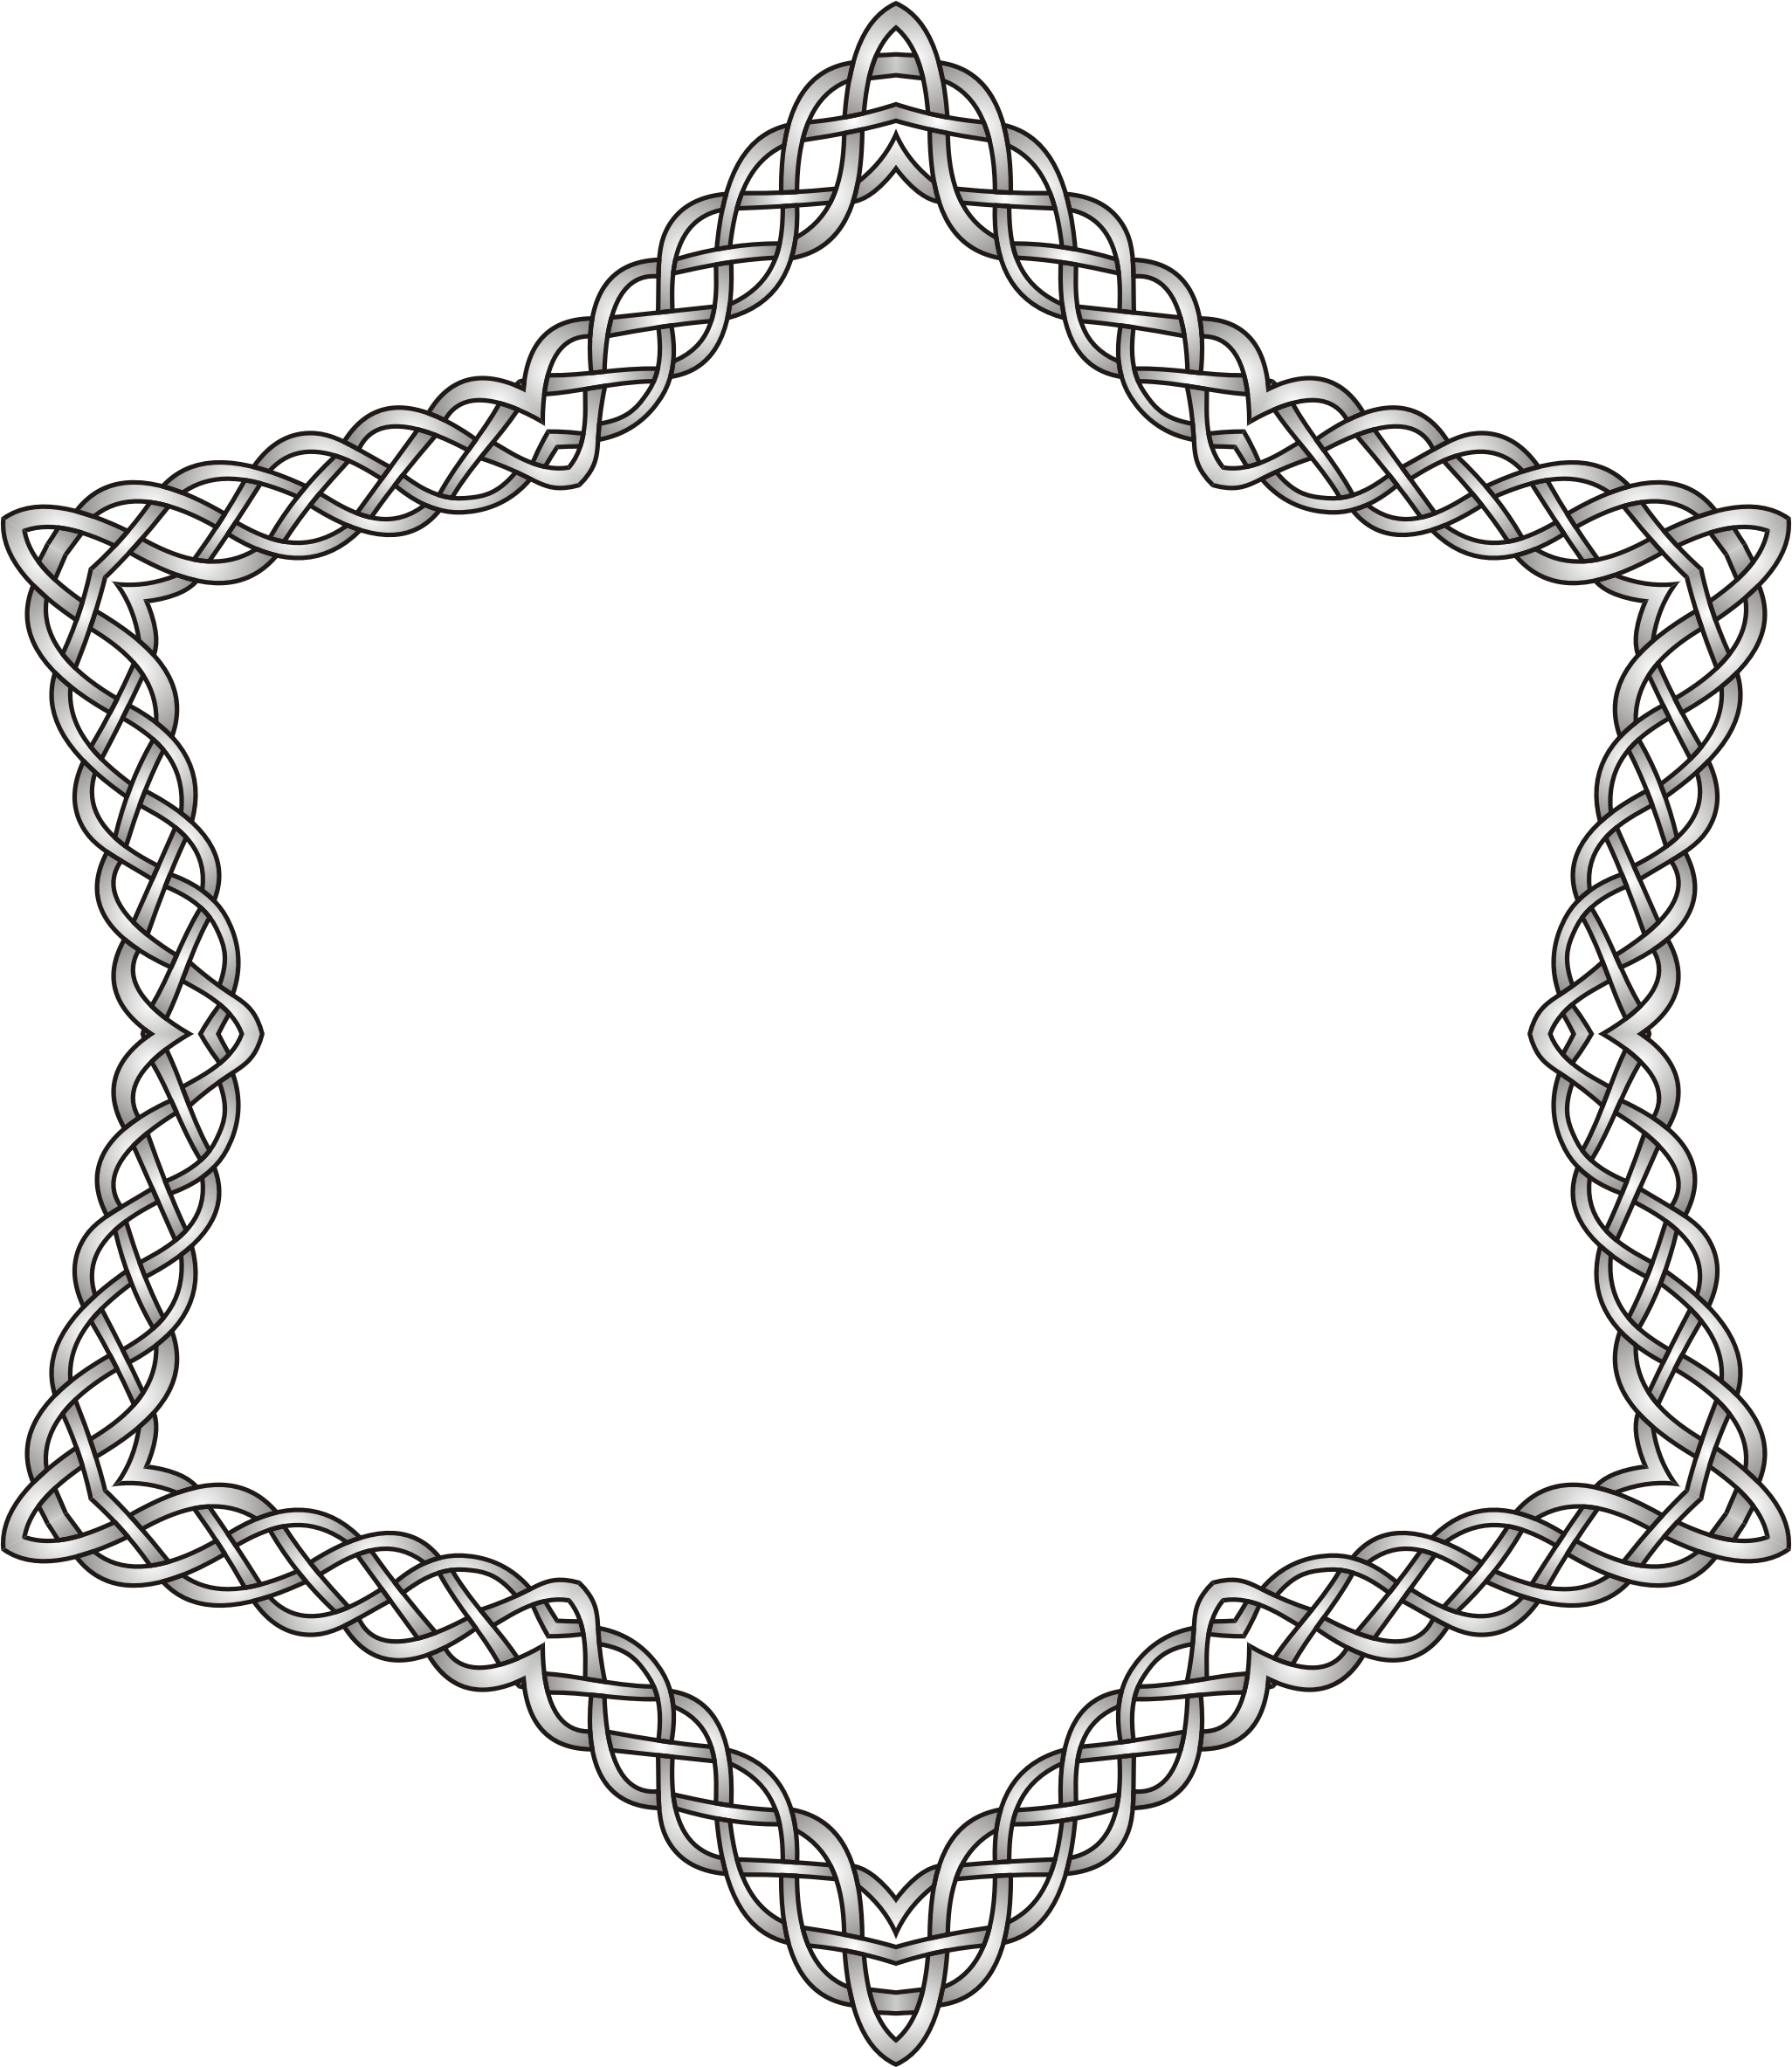 Celtic star clipart banner royalty free stock Clipart - Celtic star banner royalty free stock